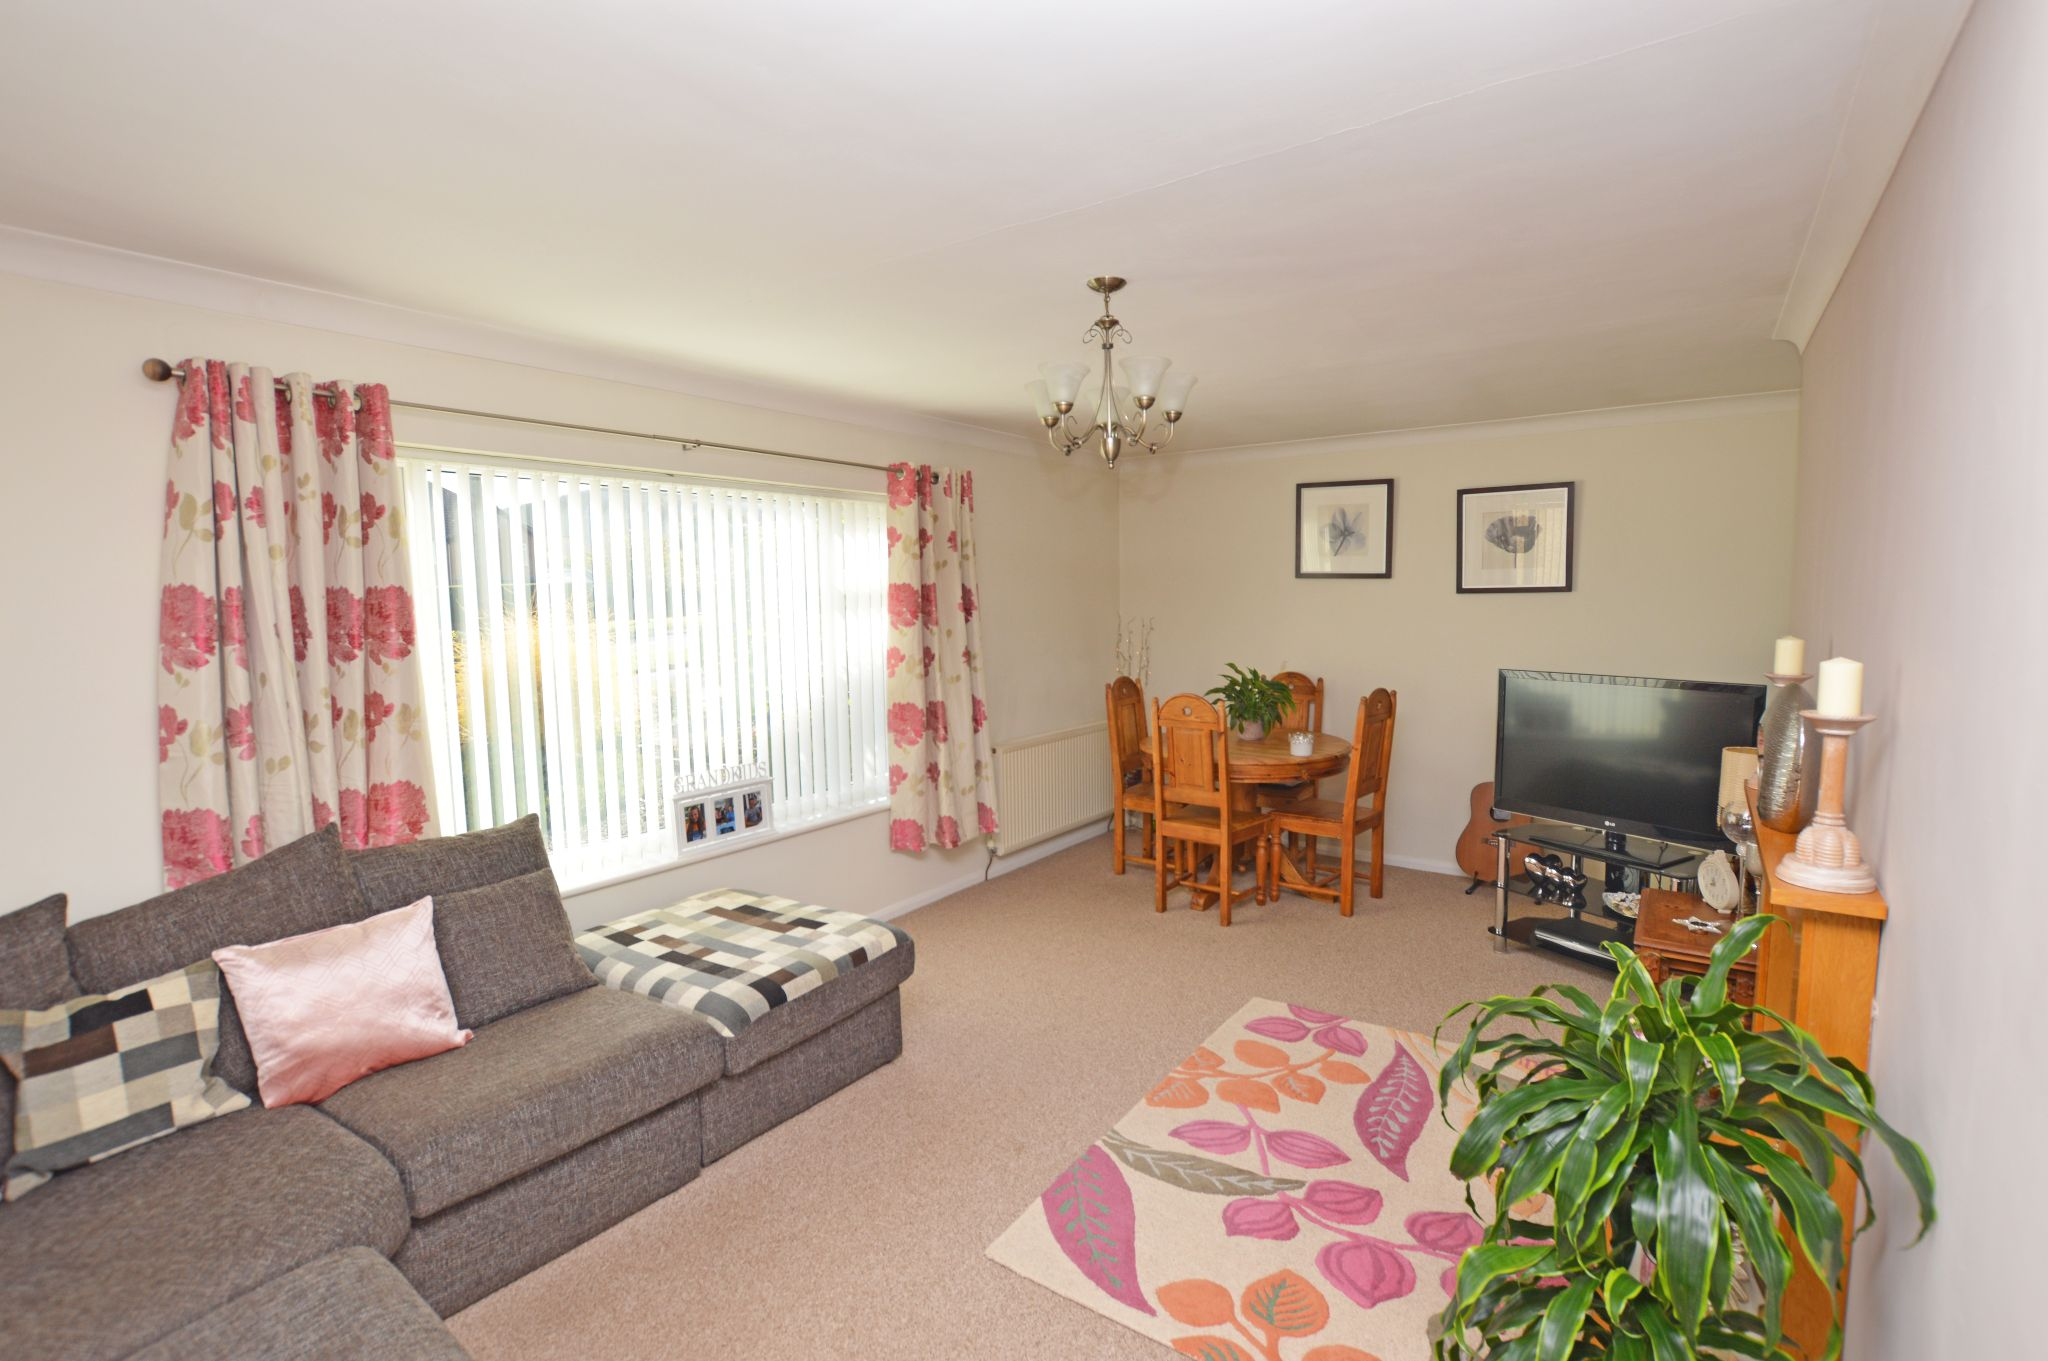 2 bedroom detached bungalow For Sale in Abergele - Lounge